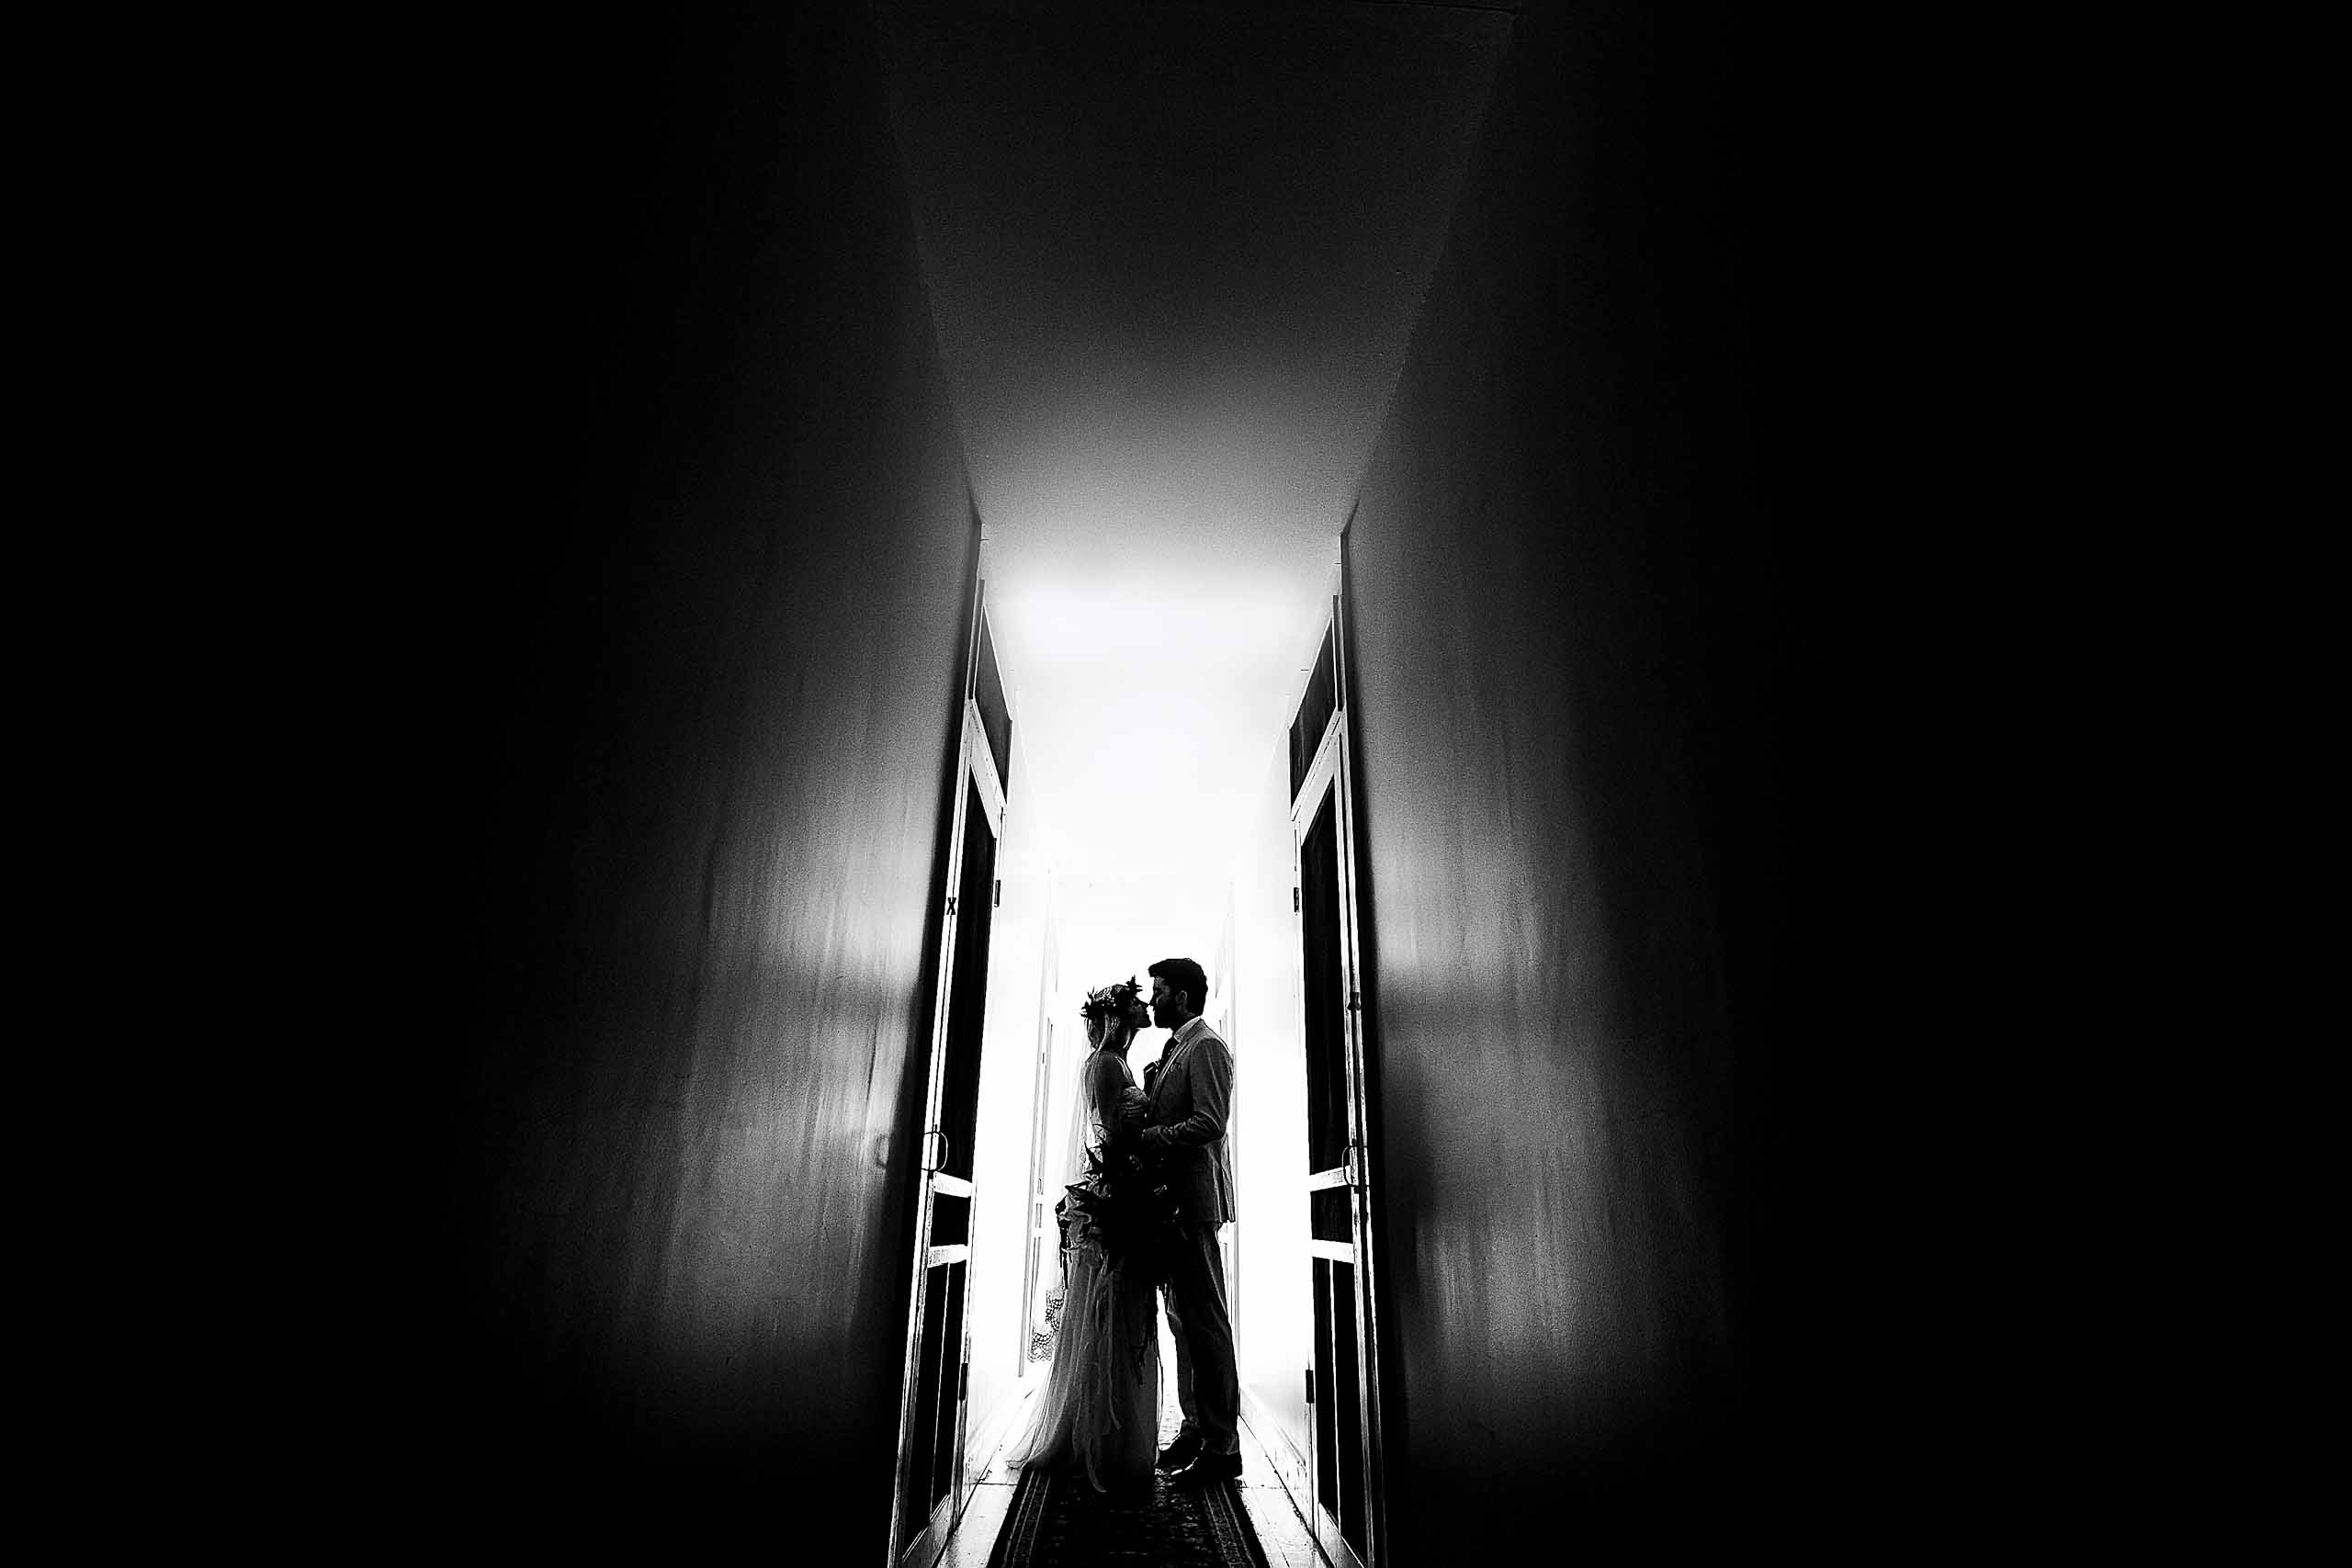 Bride and groom silhouette photo moments after their gorgeous Chesapeake Bay wedding ceremony in Maryland at Wades Point Inn.